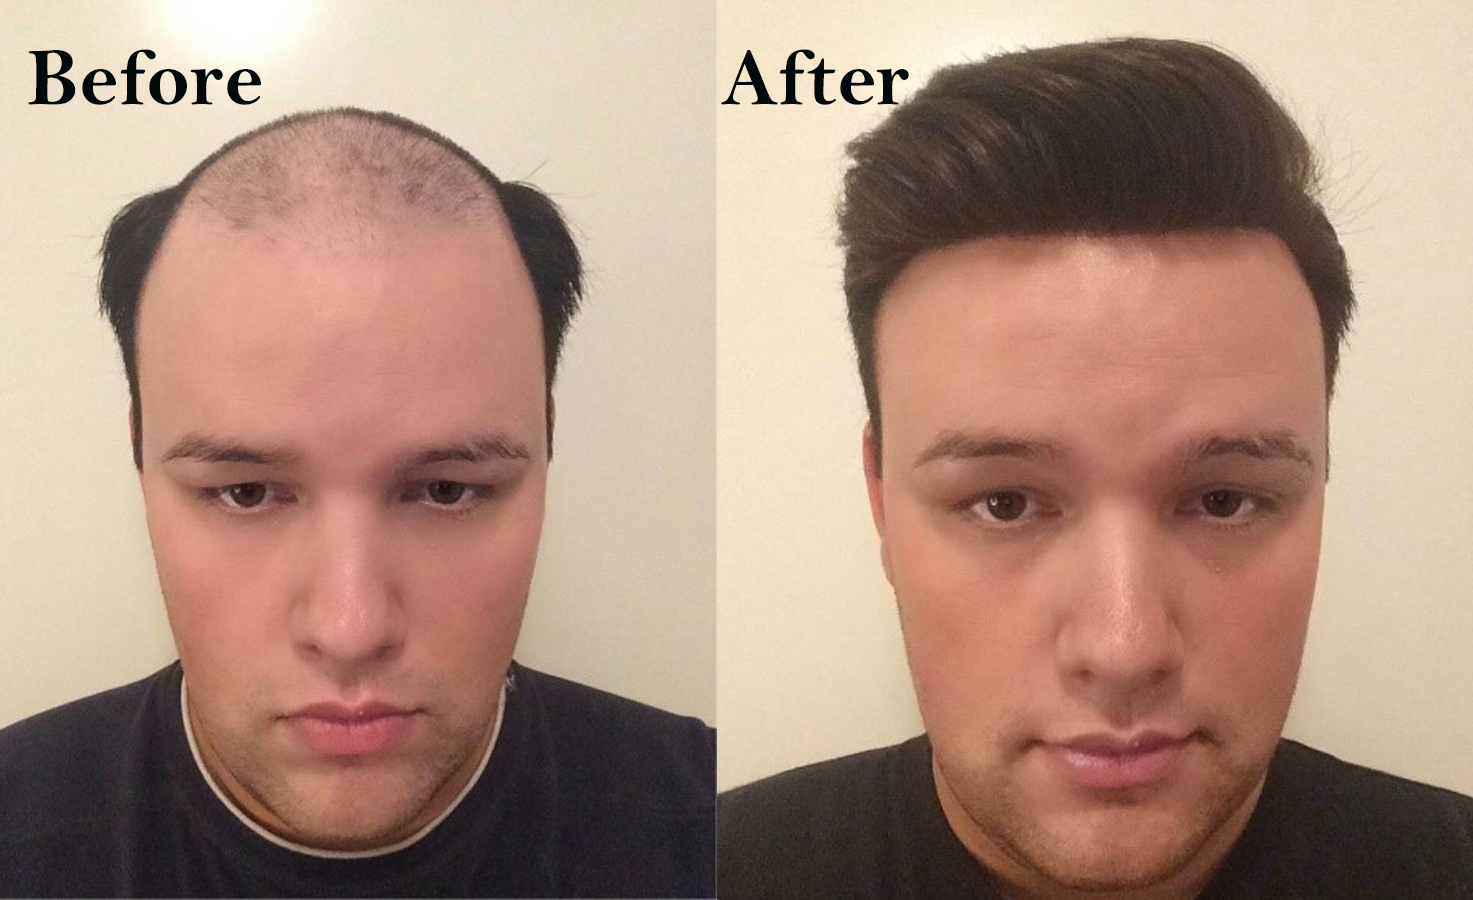 non surgical hair replacement systems before & after